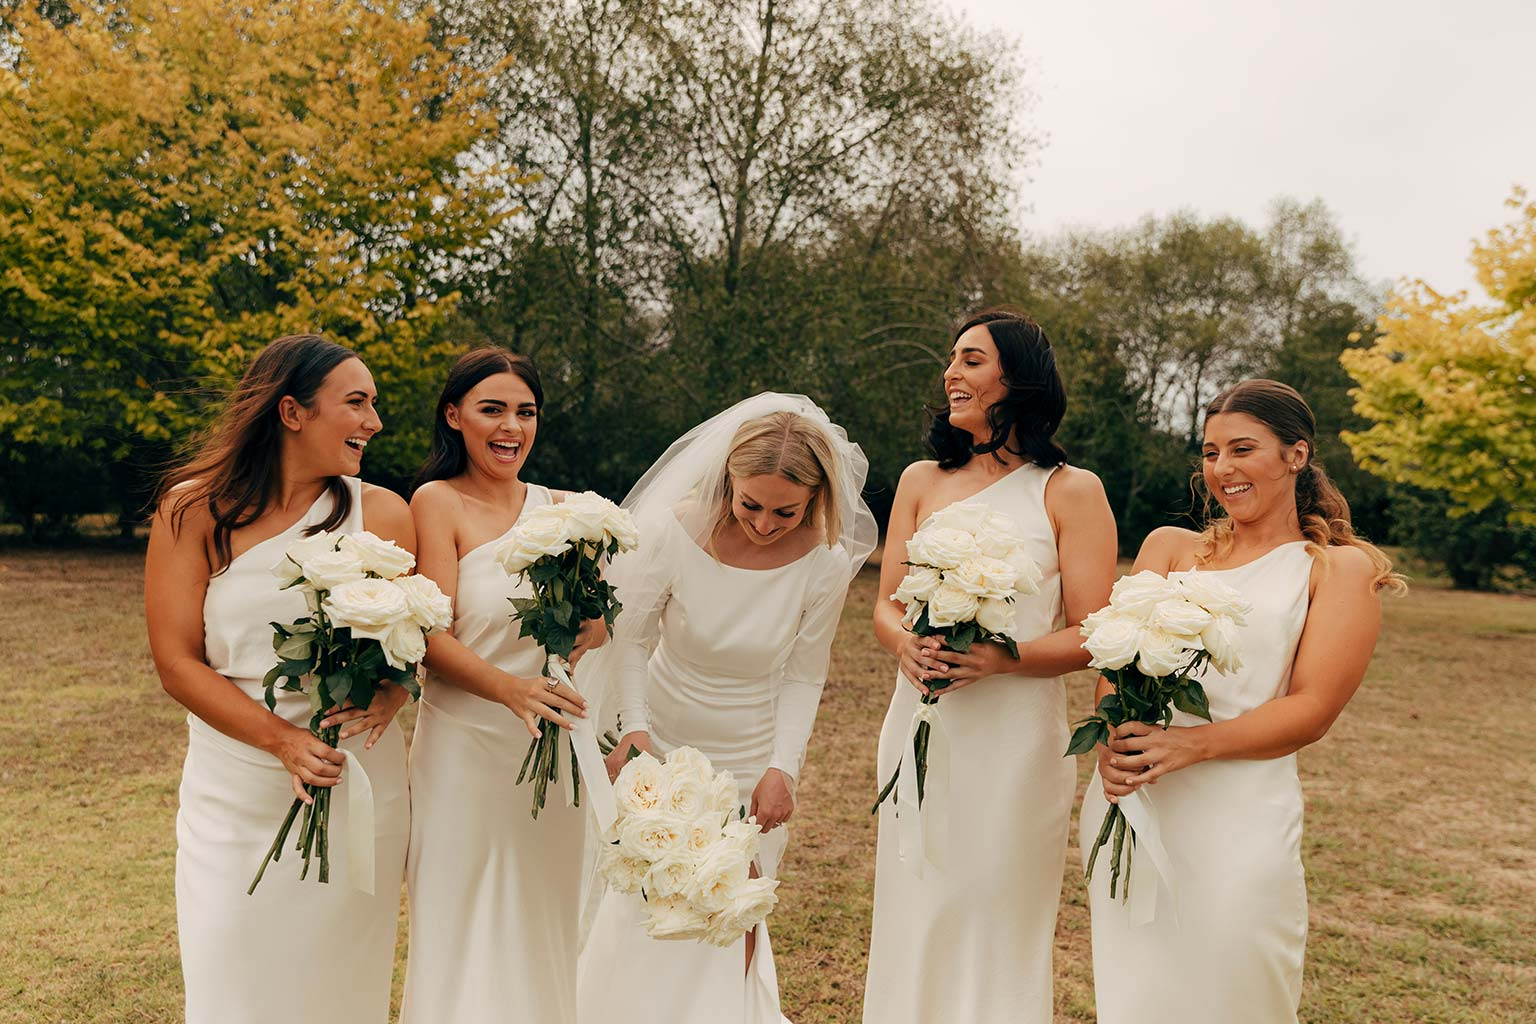 Vinka Design Bridal Wear features Real Wedding Matt and Emilia - bride laughs with bridesmaids, bride wearing Audrey gown from Modern Muse Collection with long veil